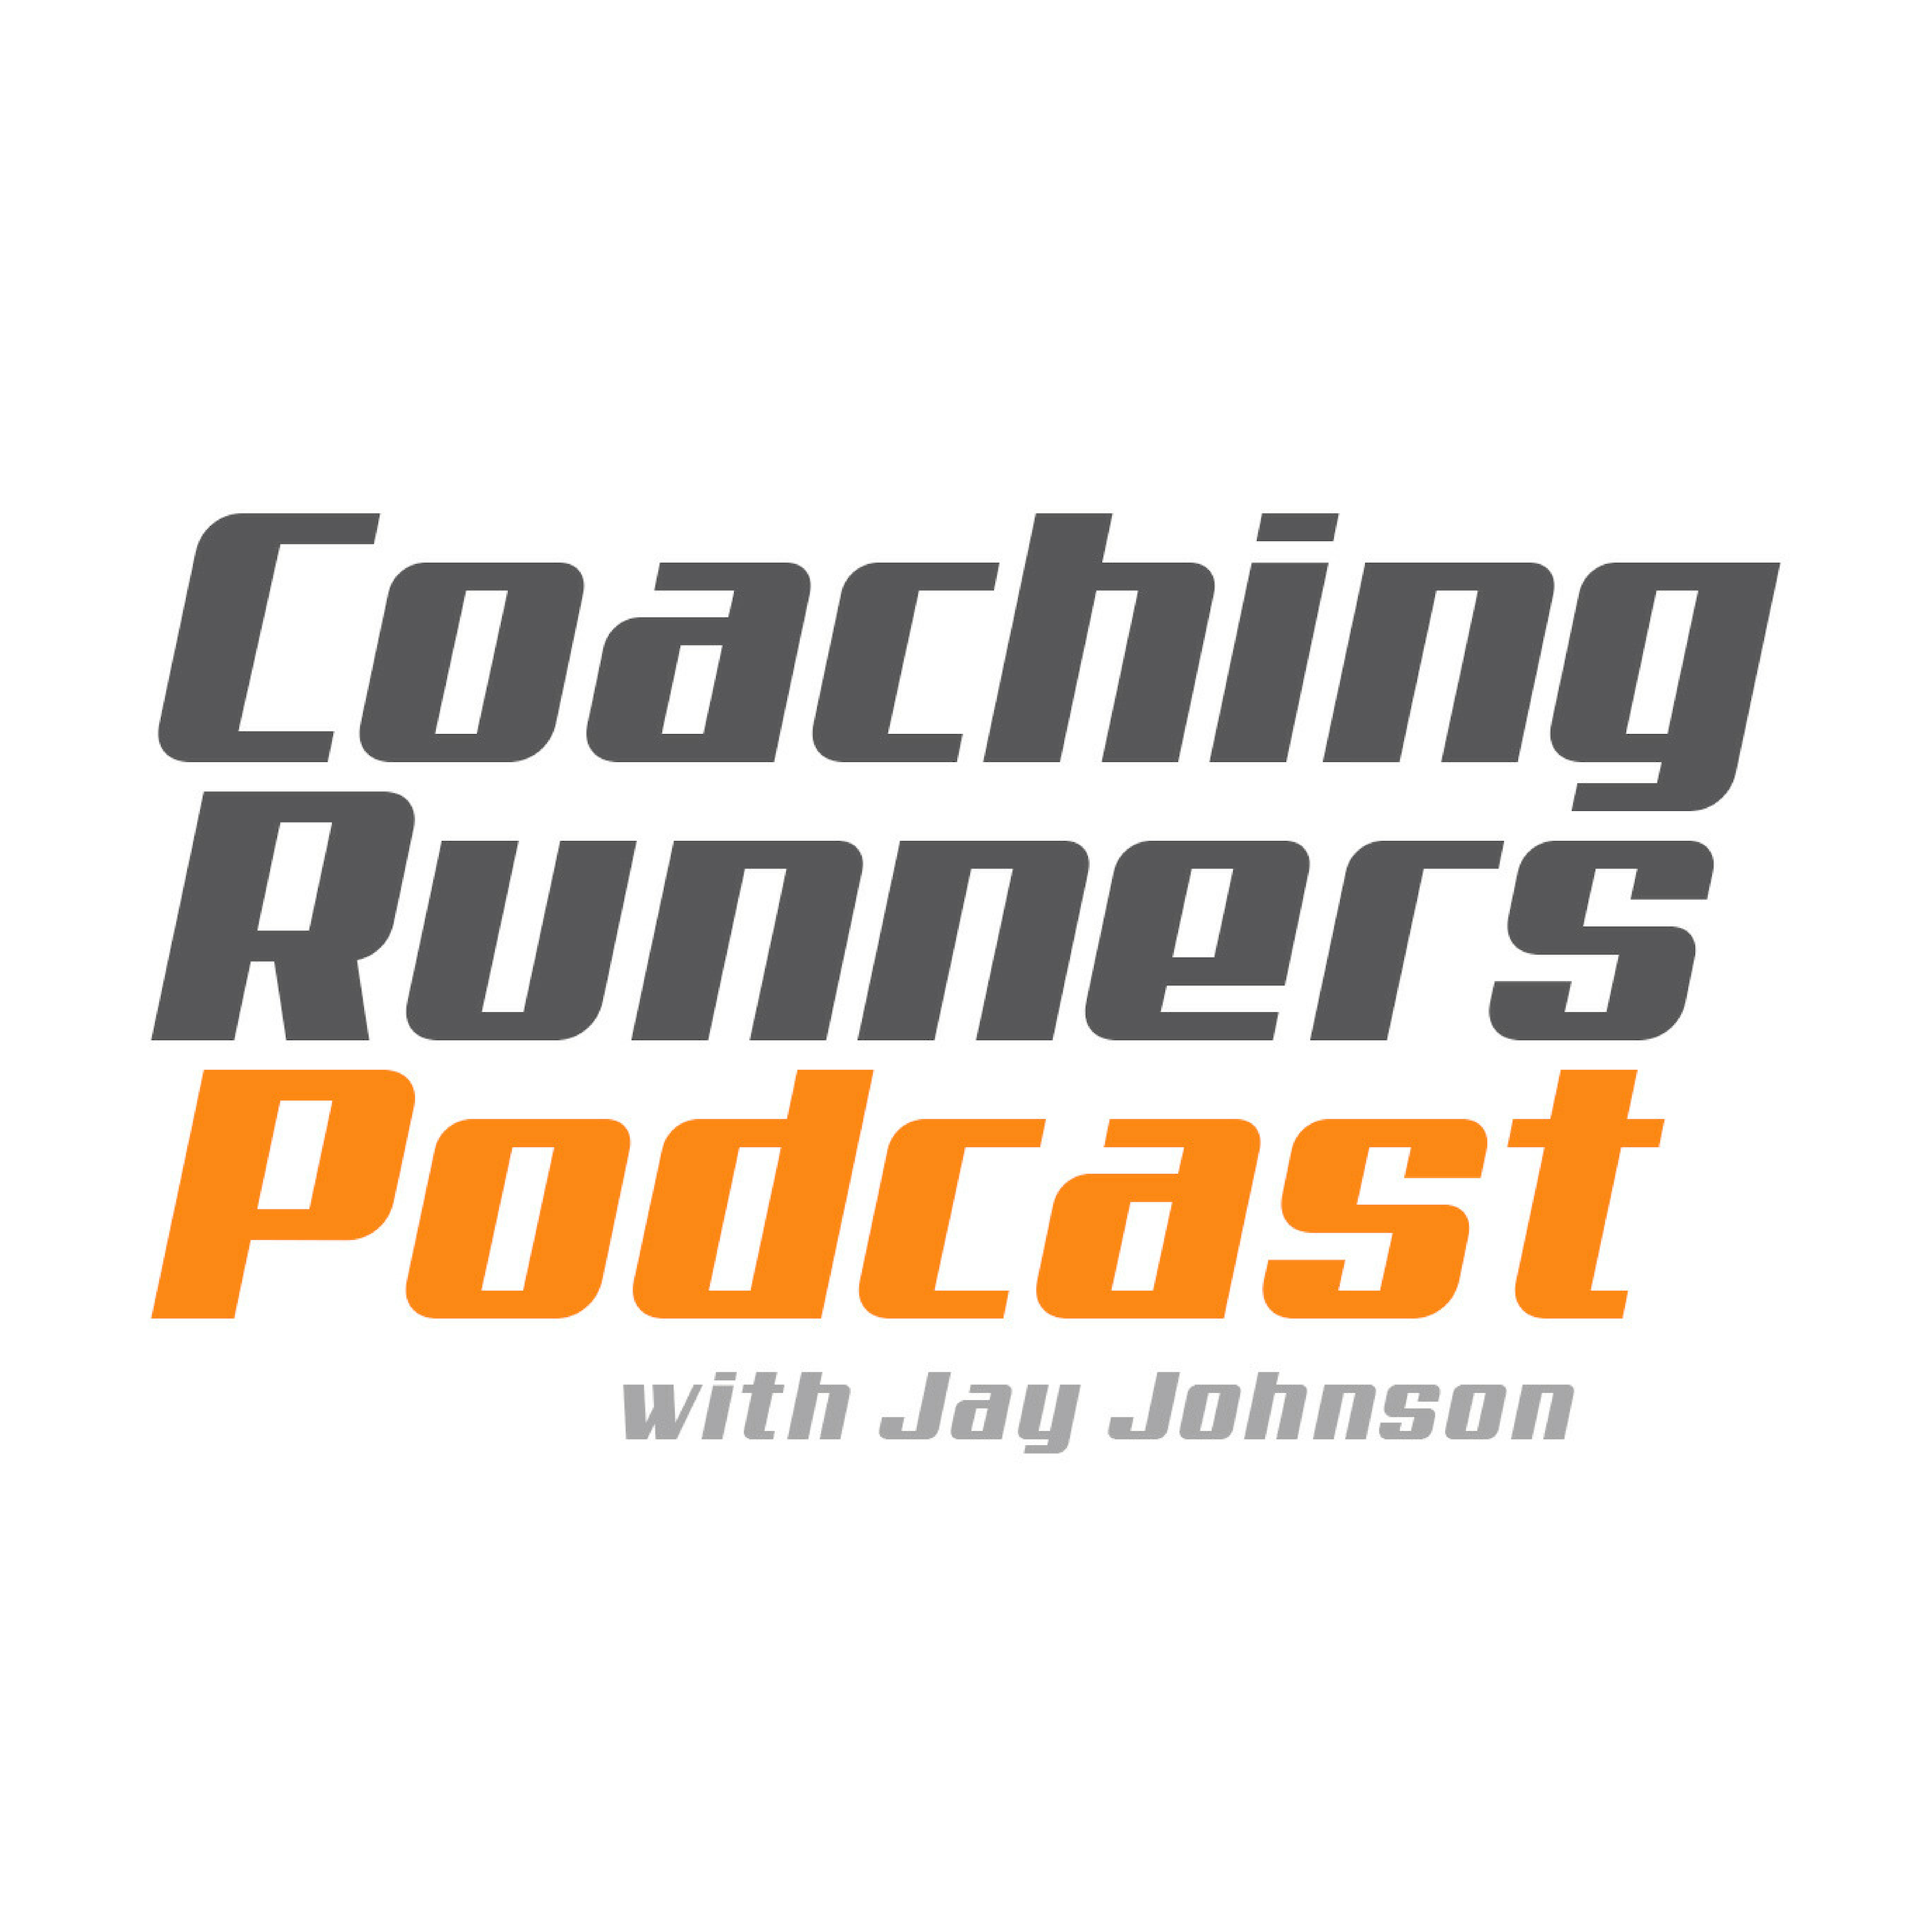 Coaching Runners Podcast on Apple Podcasts